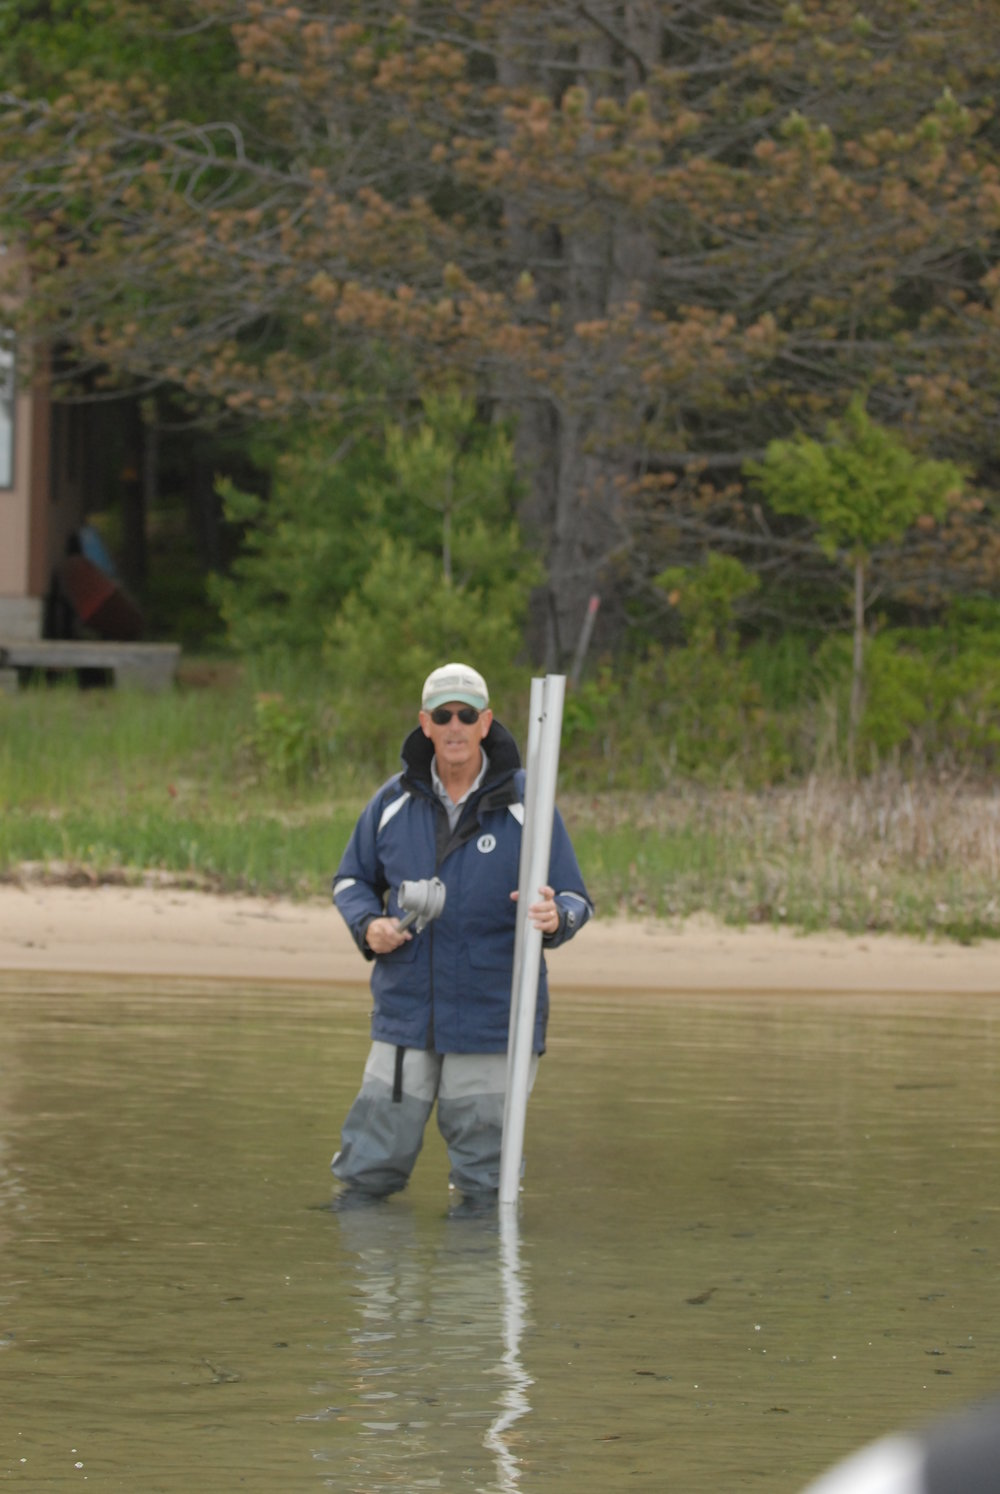 Ron Reimink, OwnerFreshwater Solutions, LLC - Ron began working on parasites responsible for causing swimmer's itch in 1977 under the mentorship of Dr. Harvey Blankespoor at Hope College. In 1983 he and Harvey began 25 years of summer fieldwork, a partnership focused on education, research, and control of swimmer's itch on lakes in Wisconsin, Maine, and Michigan. Ron was a professional high school biology educator from 1983-2015, directed a Summer Science Institute in the Rocky Mountains, taught at the American Wilderness Leadership School in Jackson, Wyoming and has served in many other leadership roles. He mentors college students as a member of the Hope College Campus Ministries Team during the academic year while focusing all of his attention on innovative swimmer's itch strategies during the spring and summer months..